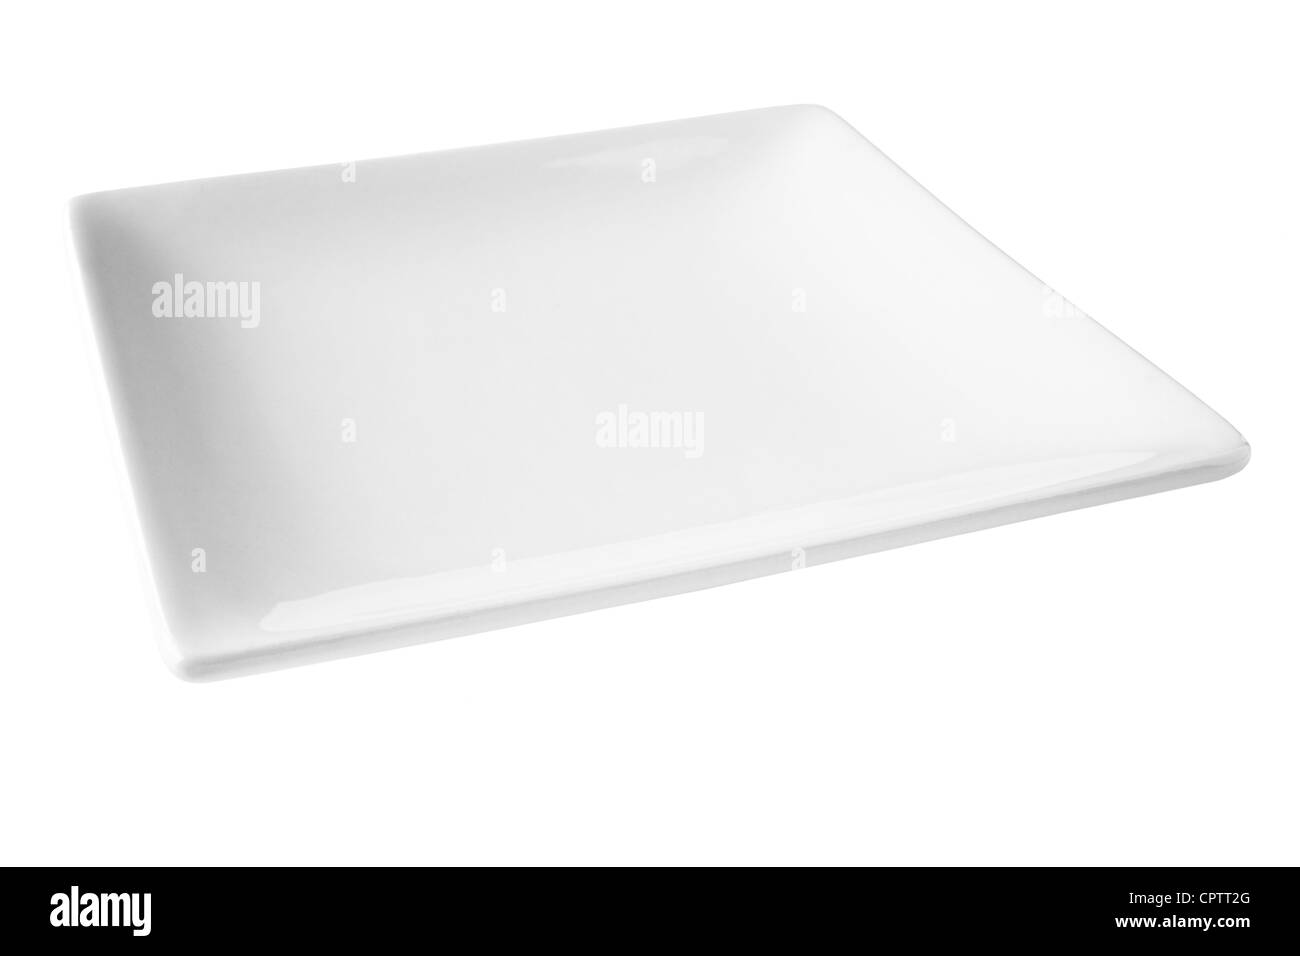 Square white porcelain plate, set at an angle, isloated on white and with clipping path included. - Stock Image